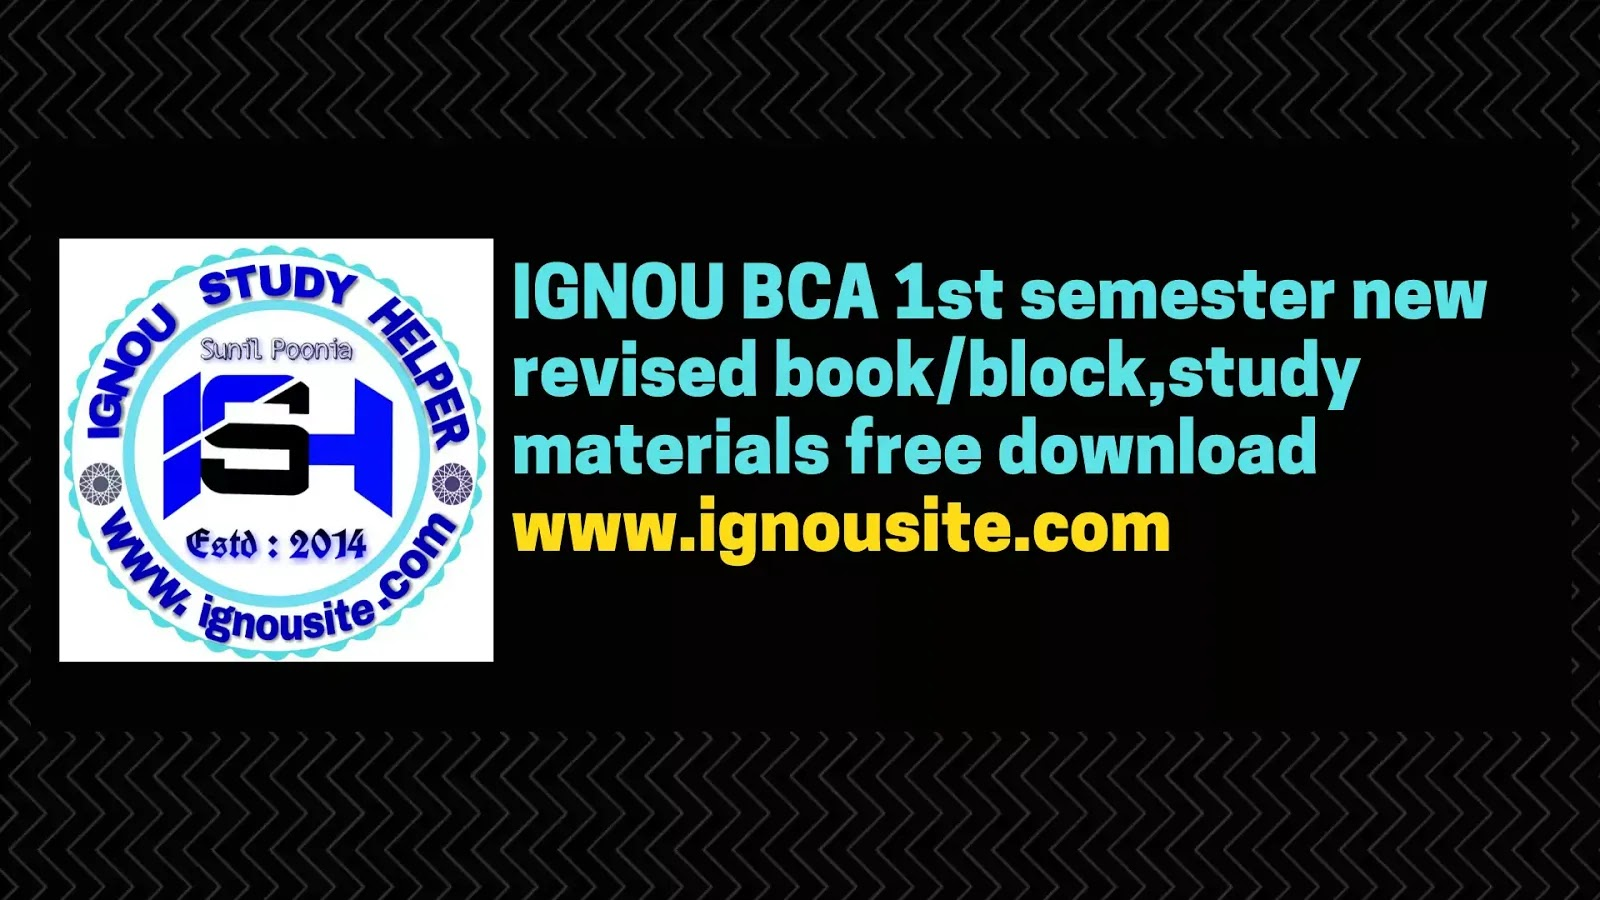 Ignou Bca 1st Semester New Revised Book Block Study Materials Free Download Ignou Study Helper Sunil Poonia